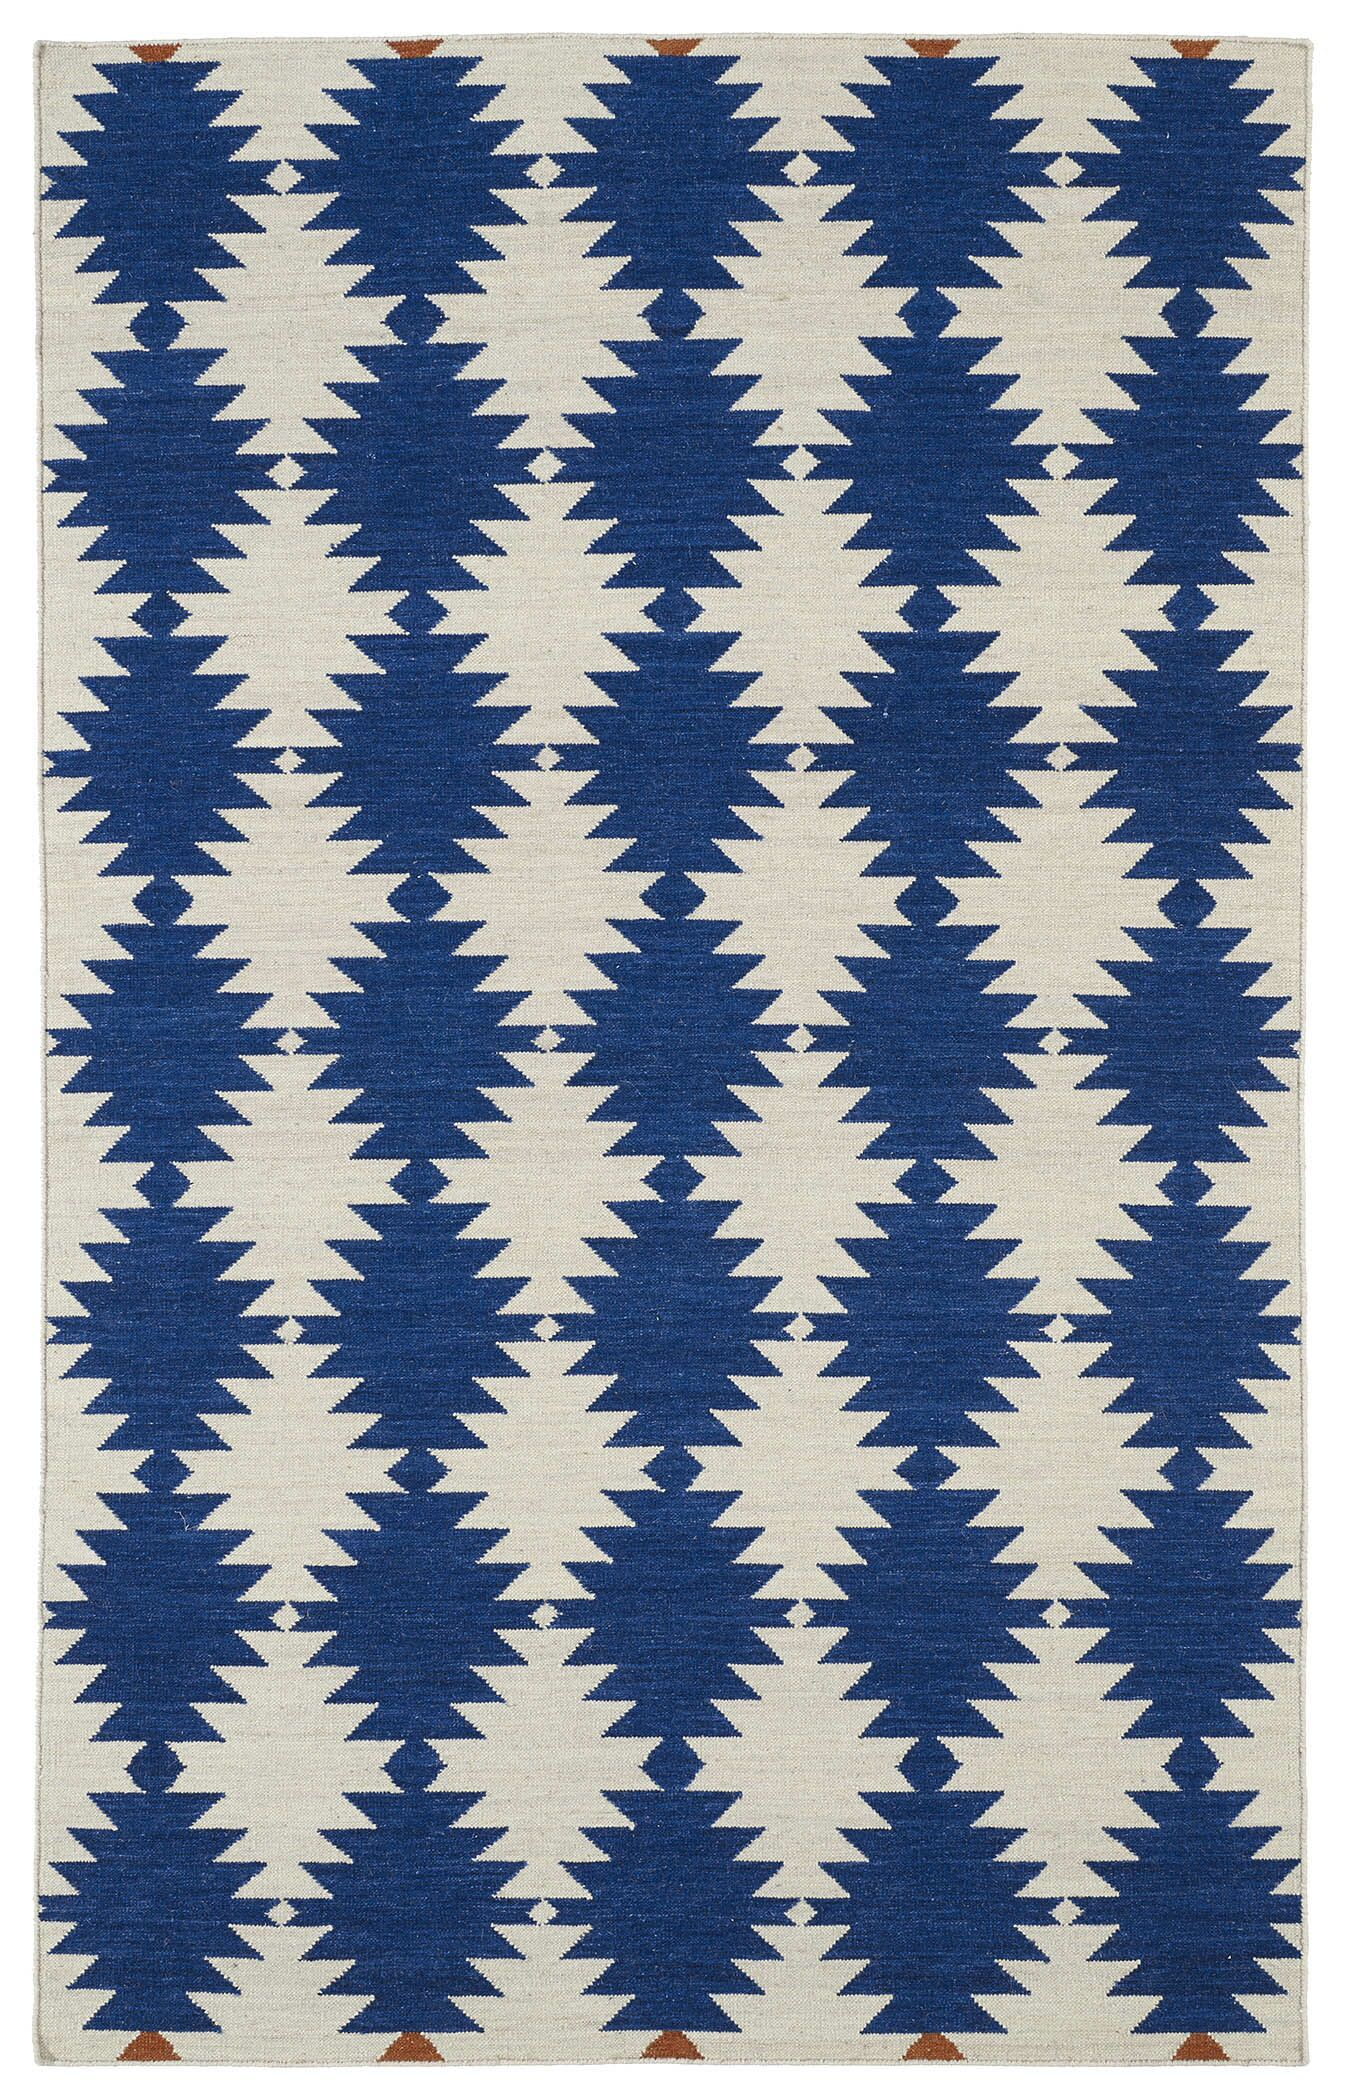 Marble Falls Navy Geometric Area Rug Rug Size: Rectangle 3'6